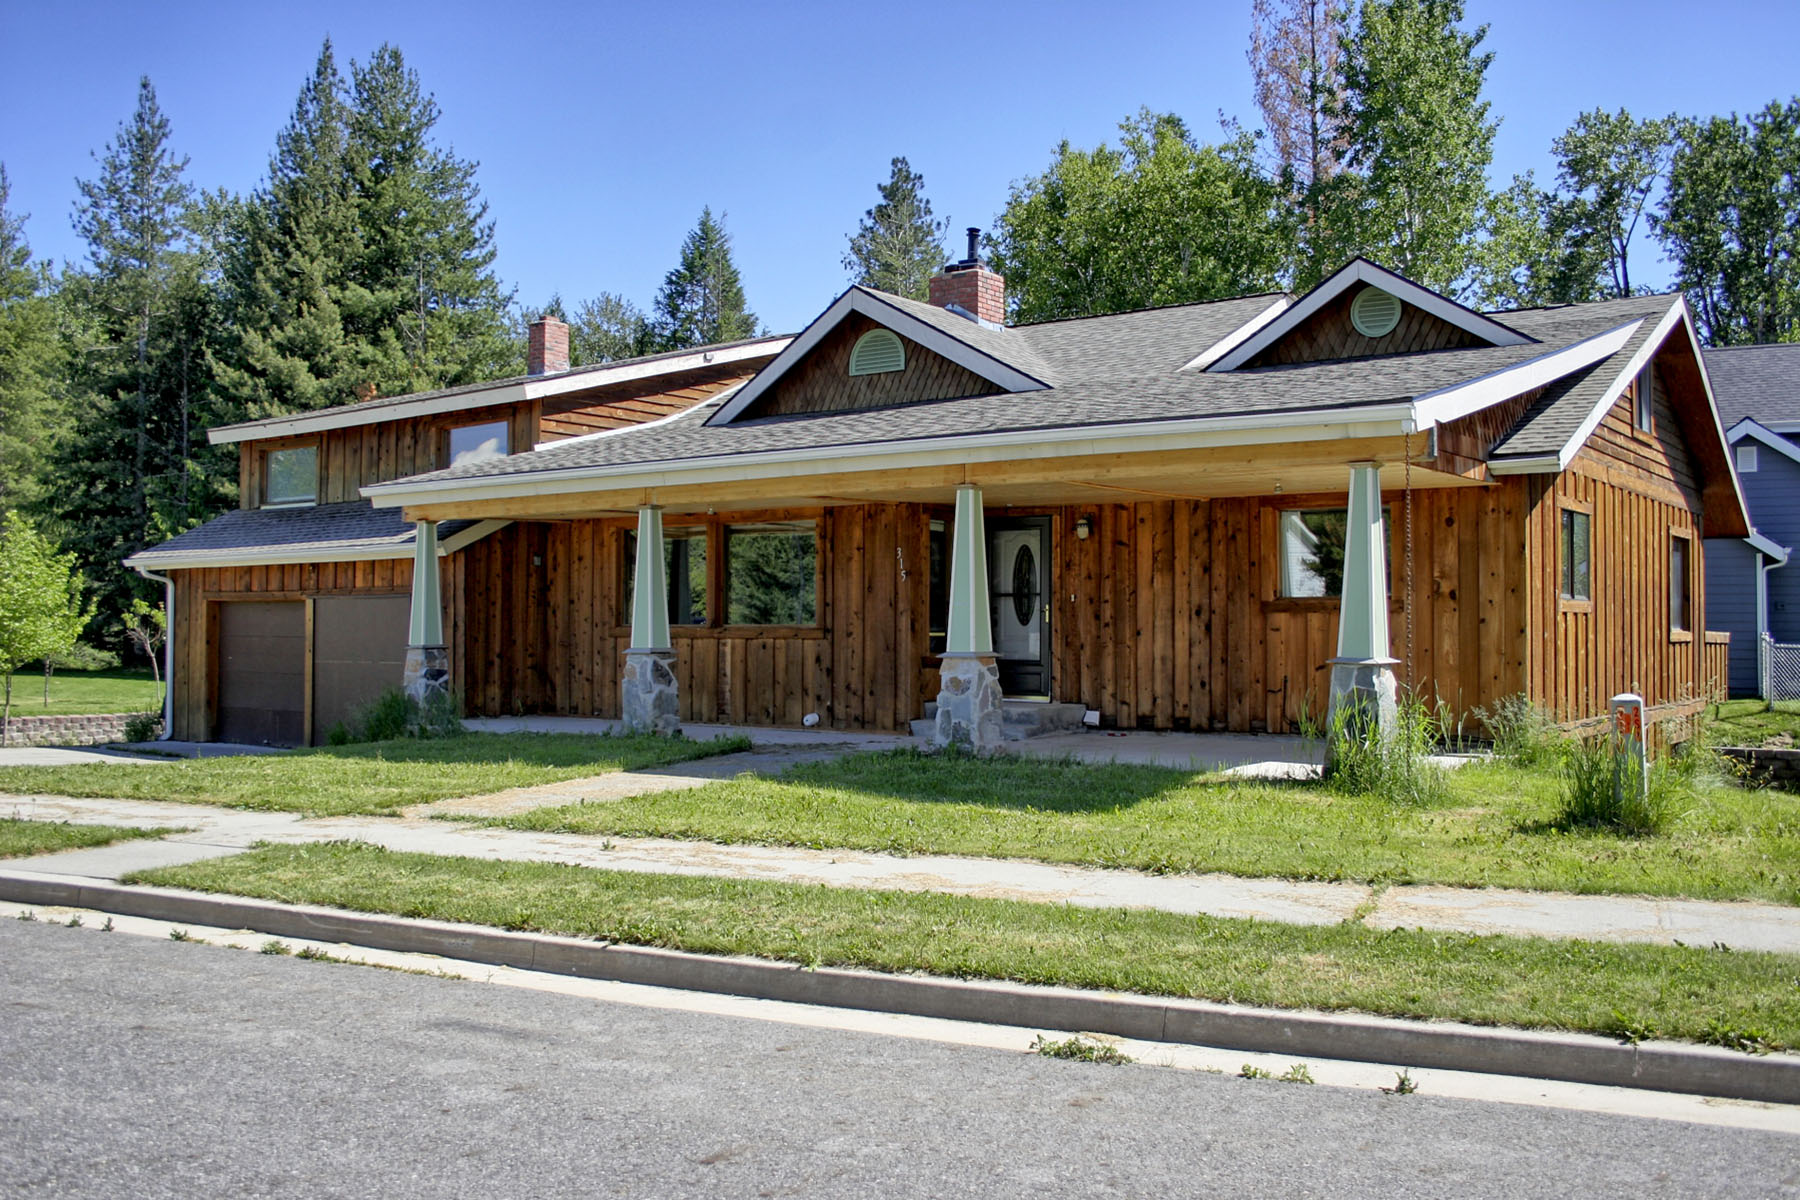 Single Family Home for Sale at Potential multi unit 315 Ashlin Court Sandpoint, Idaho 83864 United States